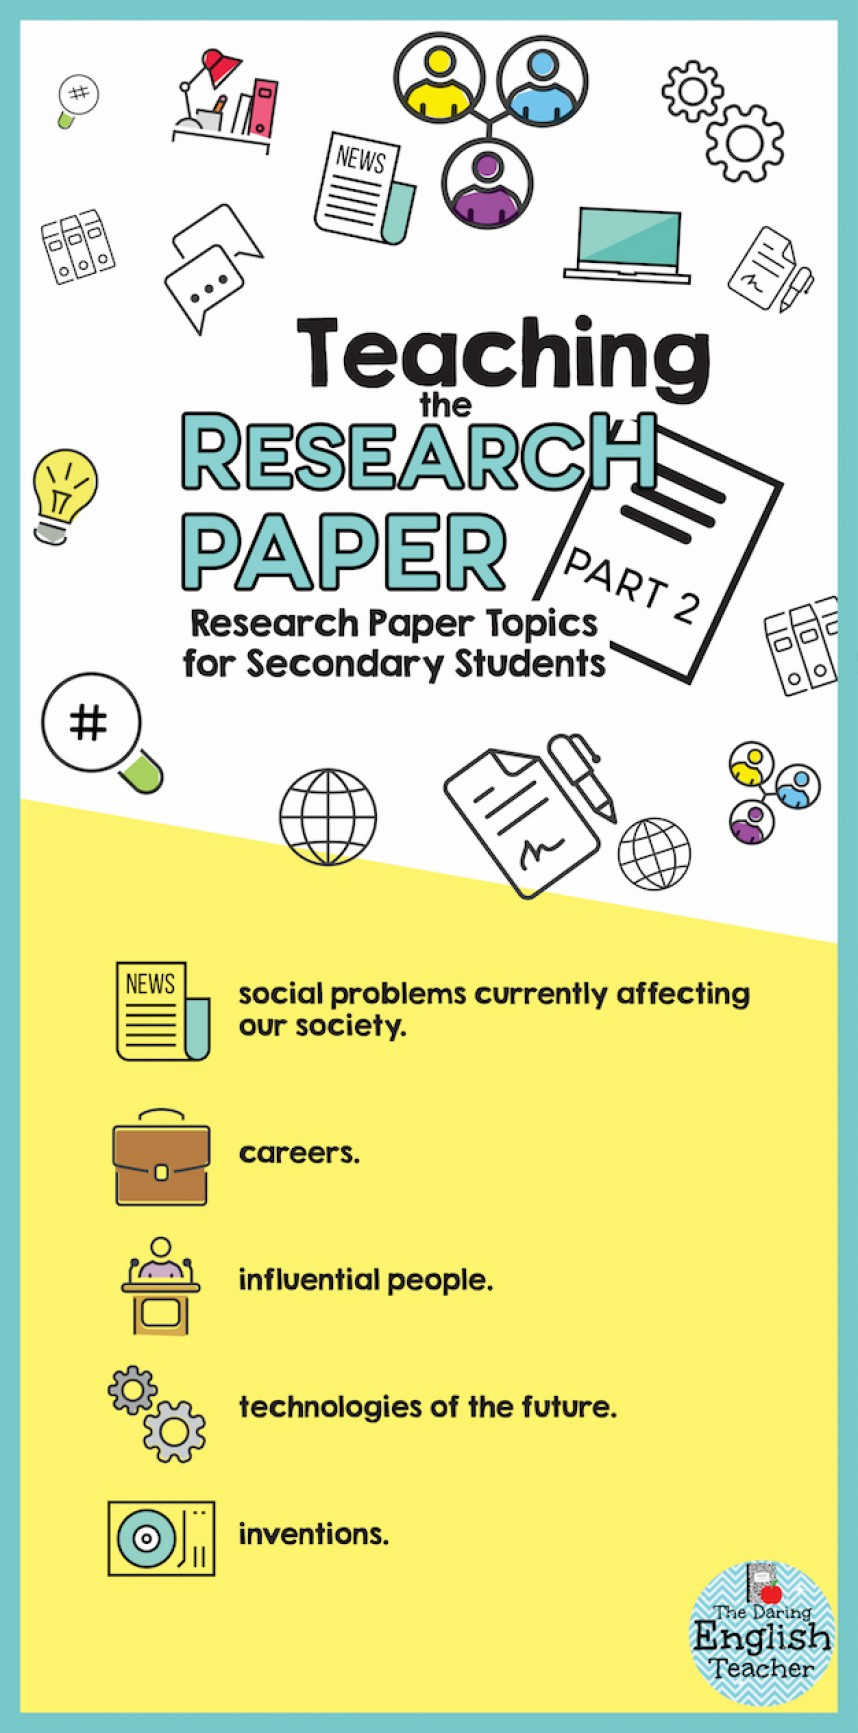 005 Infographic2bp22b2 Research Paper English Awful Topics Grammar For College Students Easy